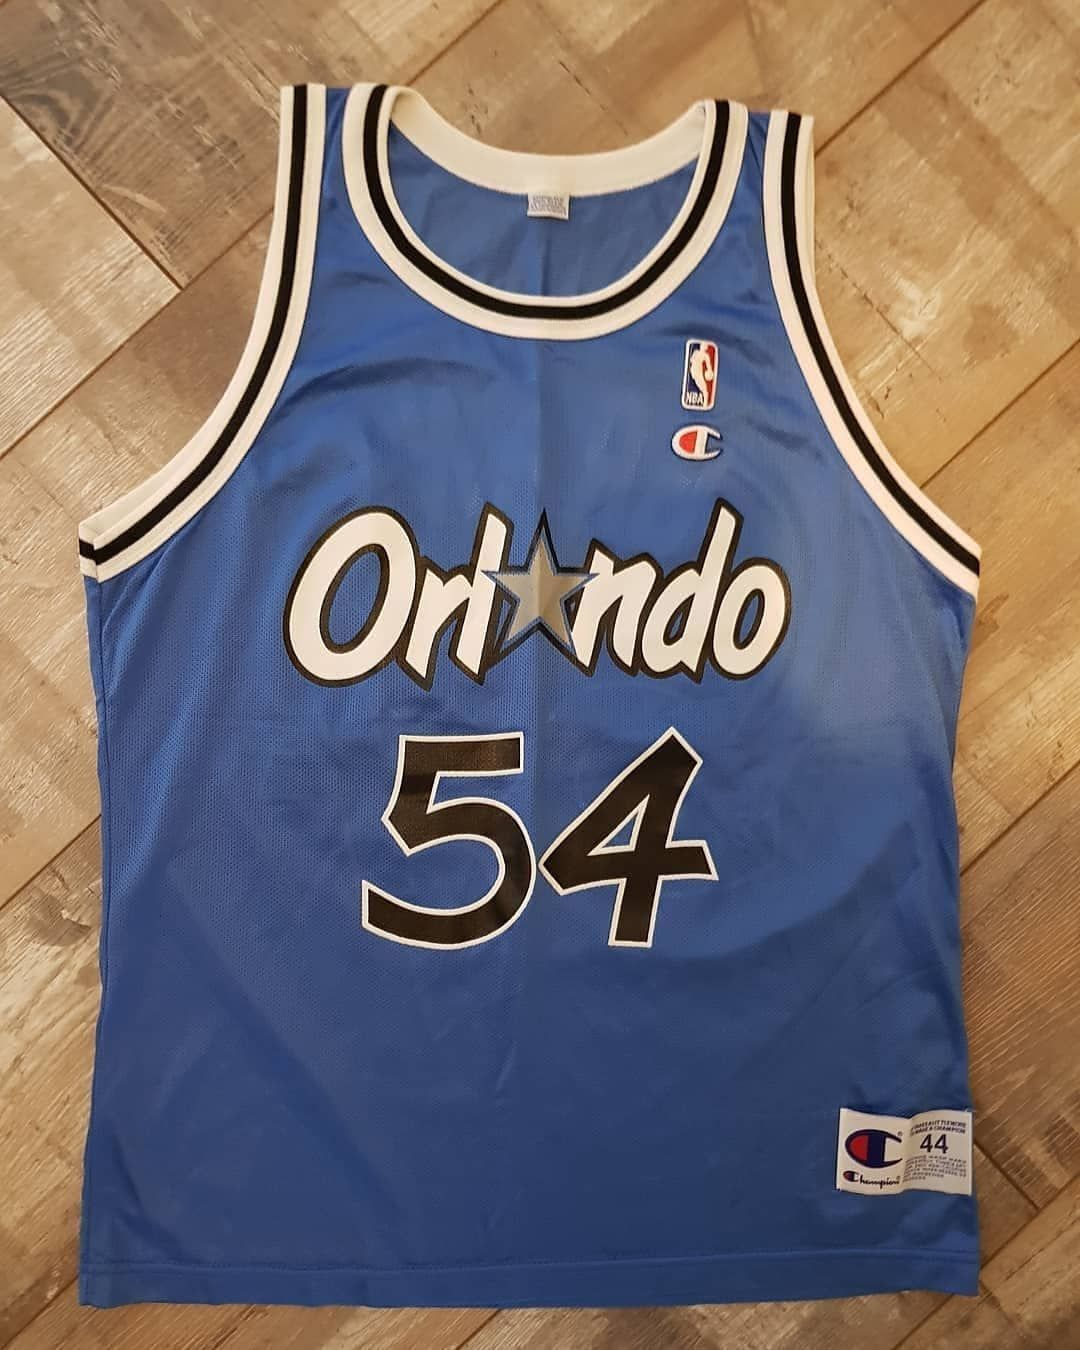 286a21a596e9 Horace Grant Orlando Magic Jersey Size 44. 55 shipping. OPEN TO OFFERS.